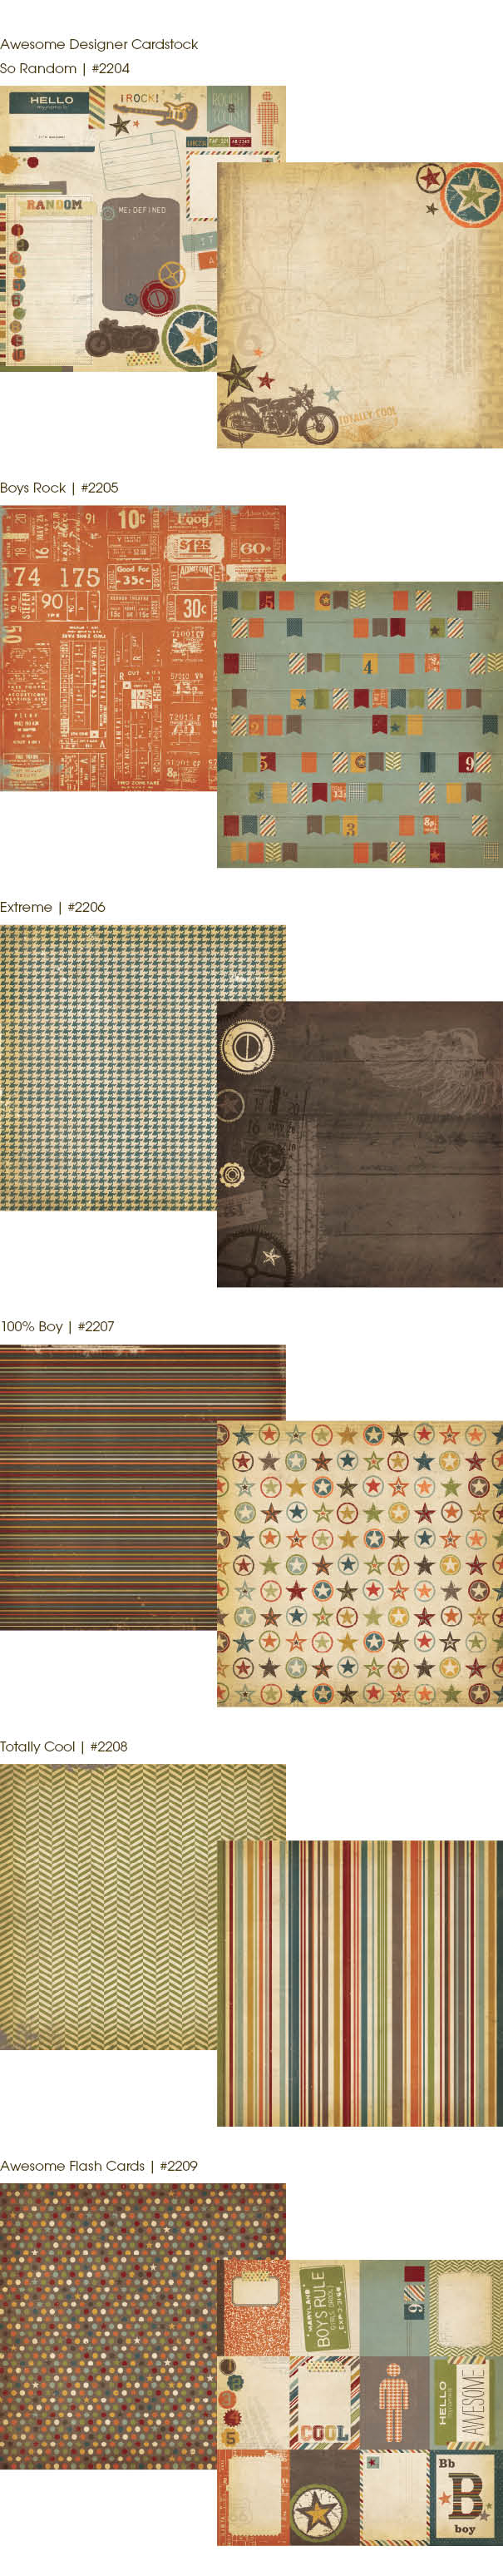 Awesome_Cardstock